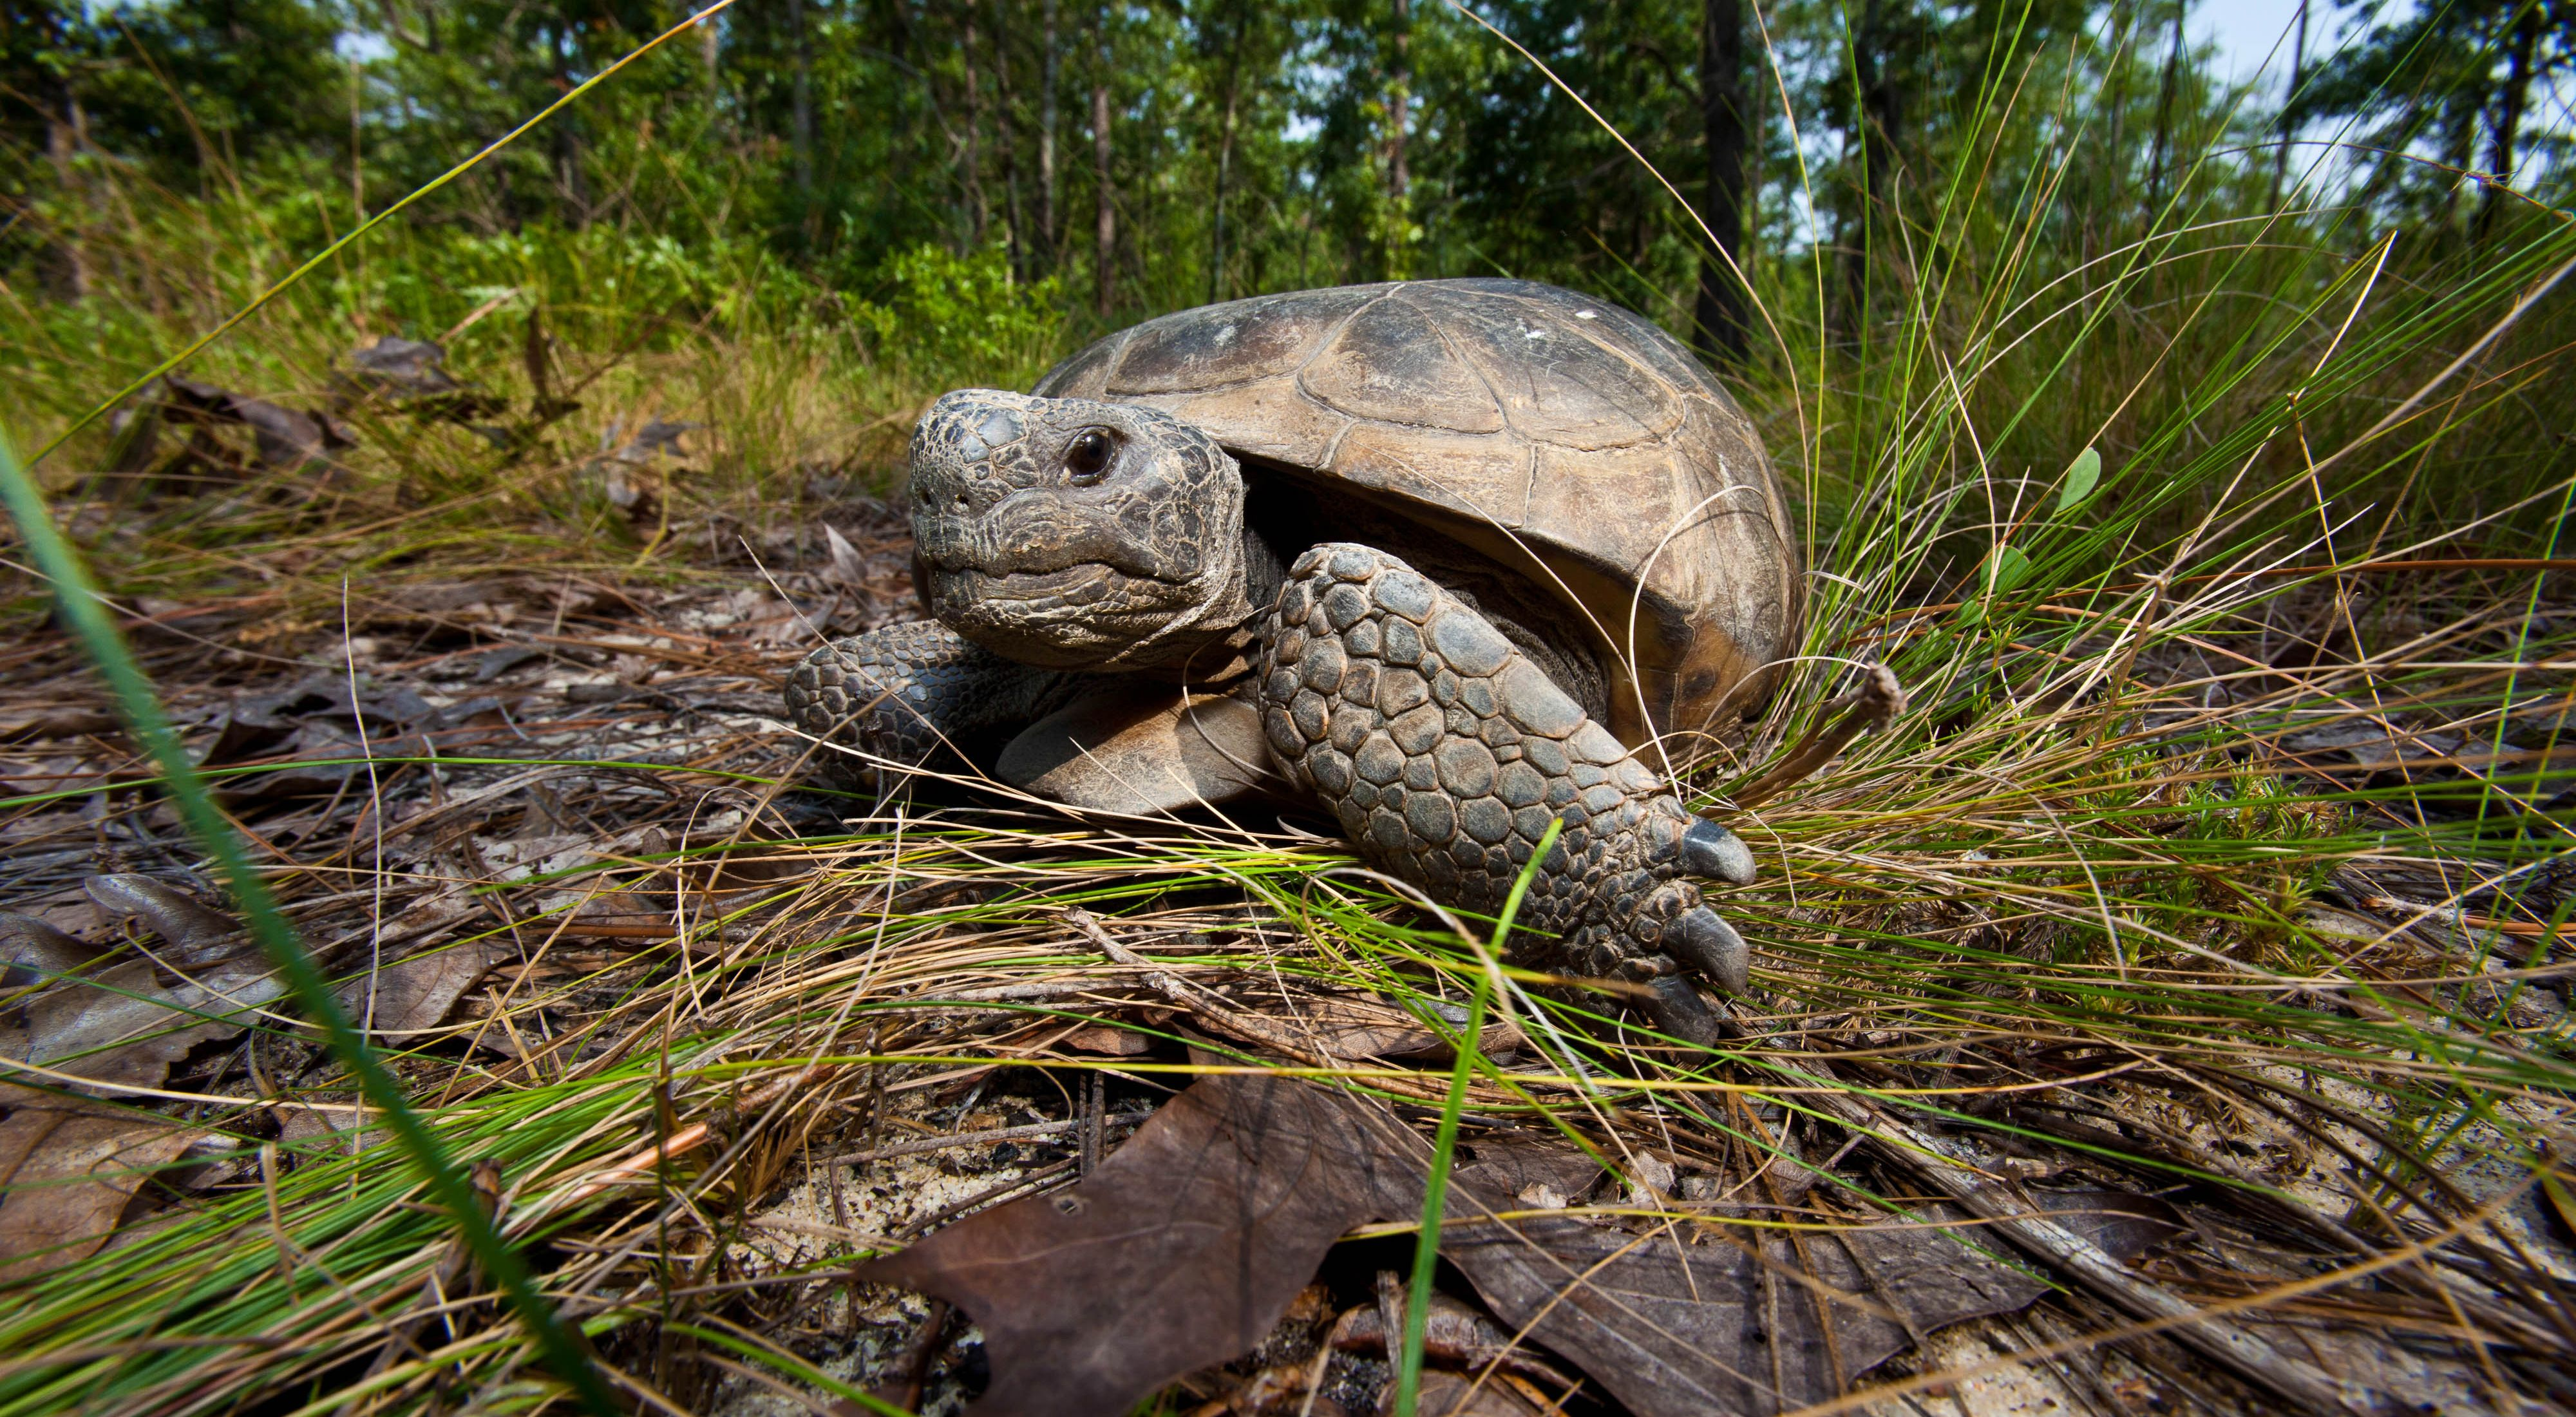 A gopher tortoise at Charles Harrold Preserve